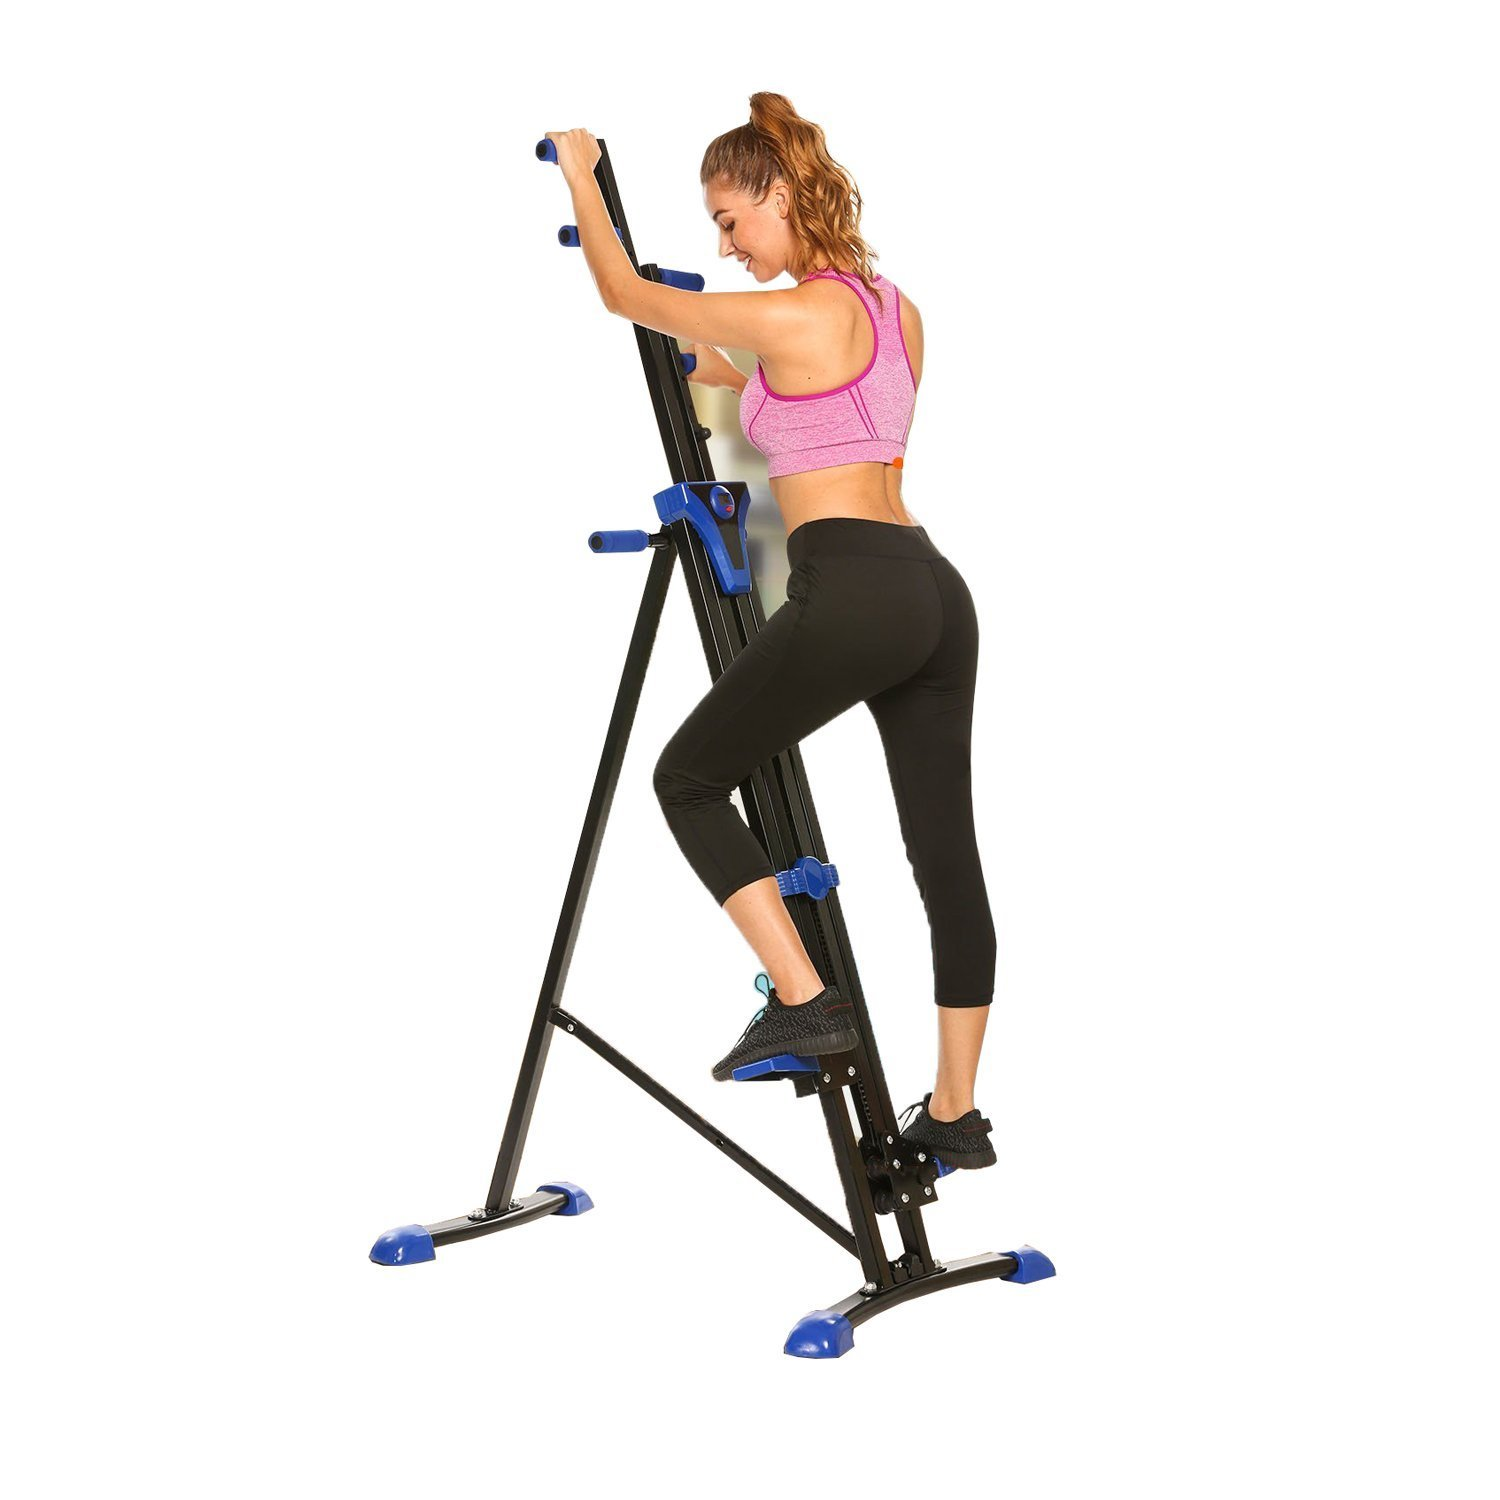 Cosway Folding Vertical Climber Stepper Gym Exercise Fitness Equipment Cardio Workout Training Machine, US Stock (Blue)